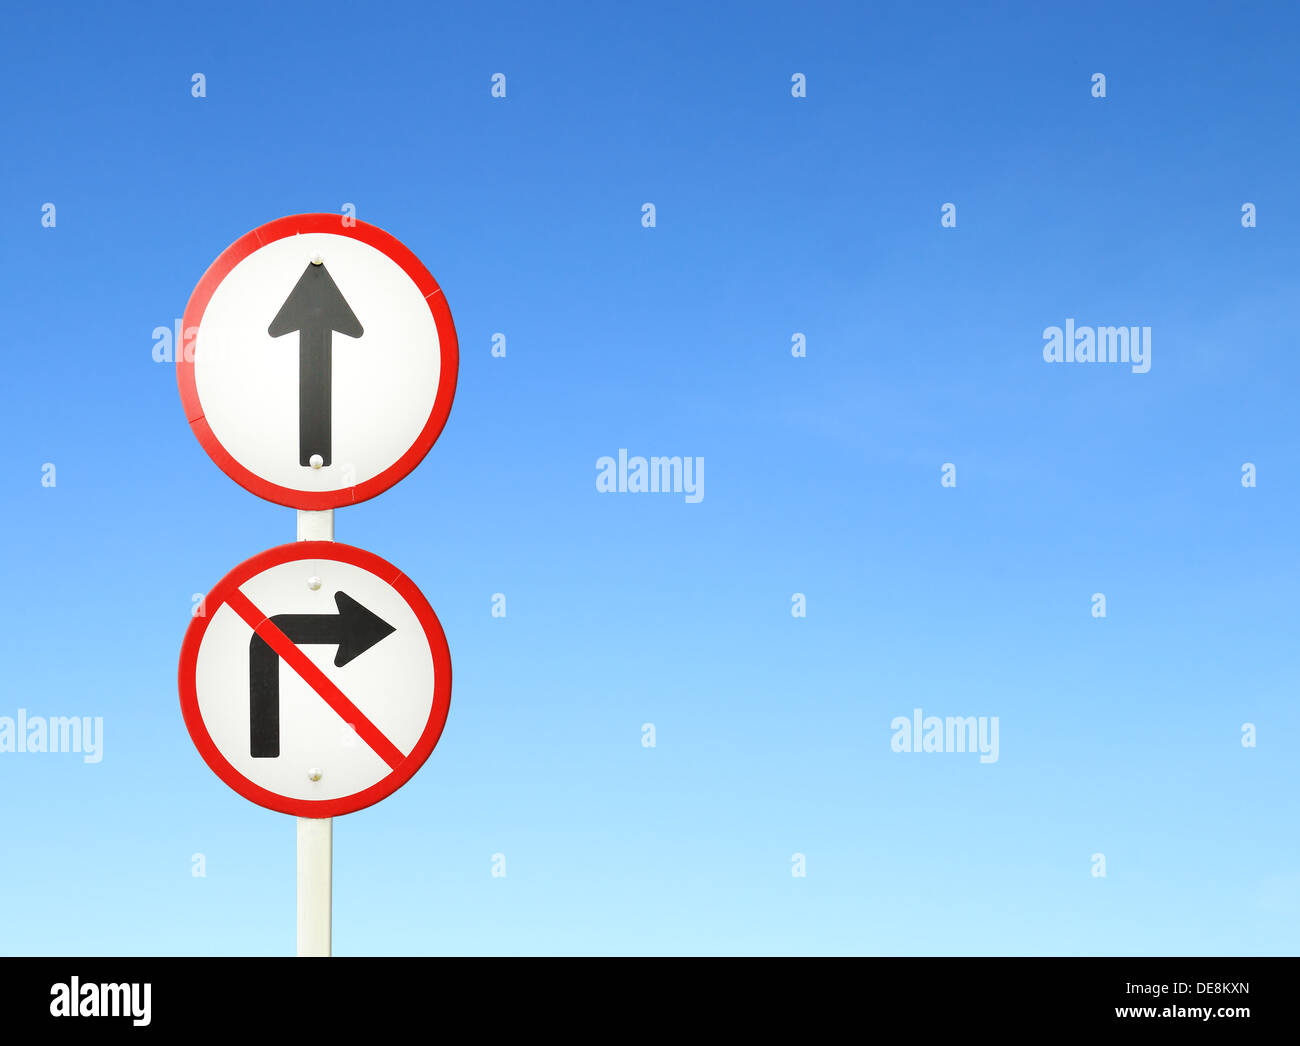 go ahead the way ,forward sign and don't turn right sign with blue sky blank for text - Stock Image